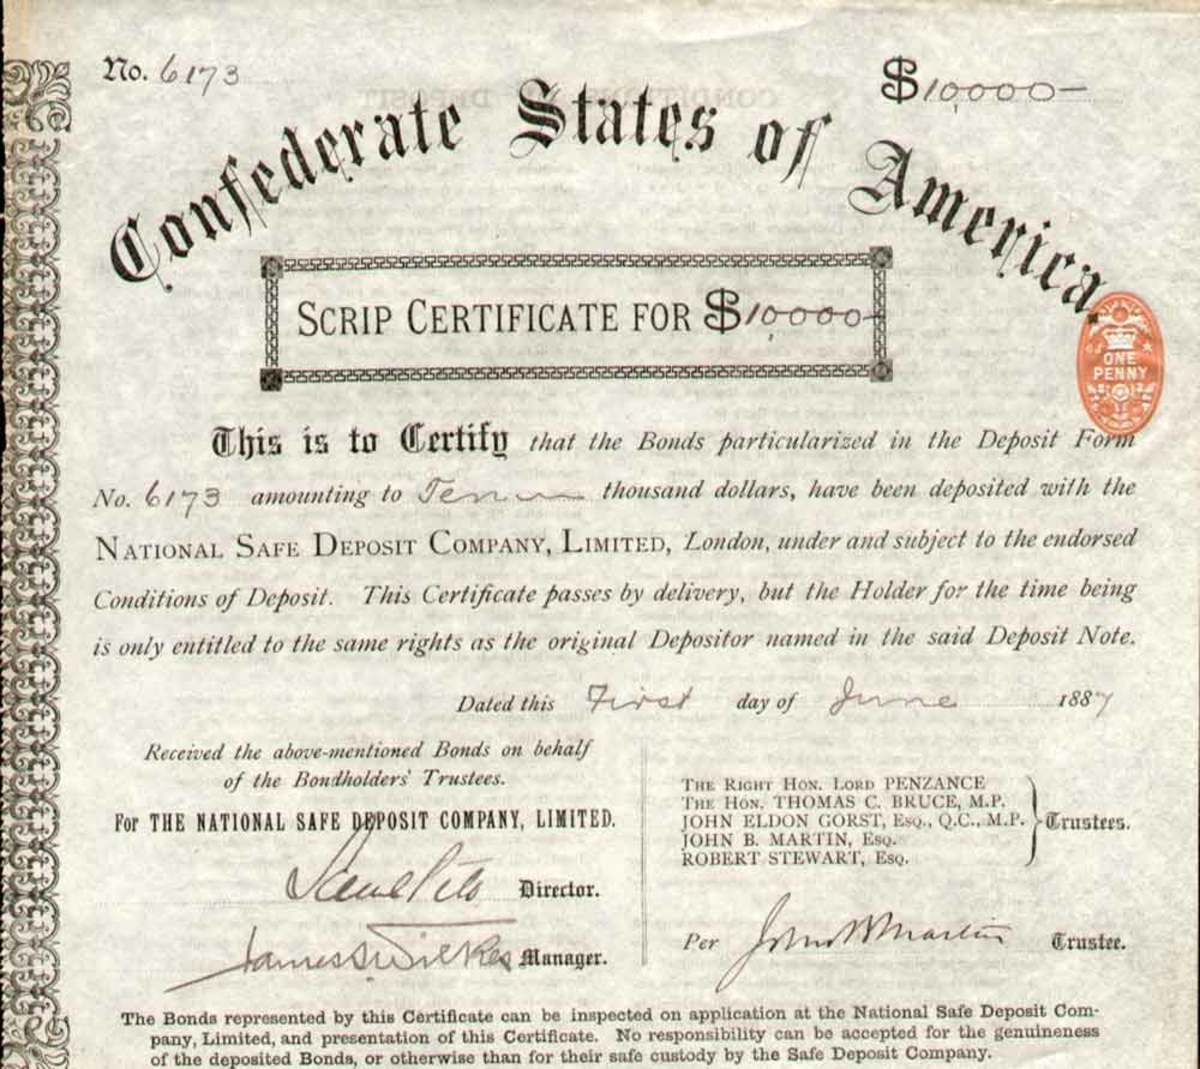 Criswell no. 175 (not listed in Ball); rarity 10 = very rare.  Scrip Certificate for X US $: (handwritten: 10.000 $) issued by the National Safe Deposit Company Ltd. for holding of confederate bonds, London, 1887; measures ca. 22 x 21 cm., one penny